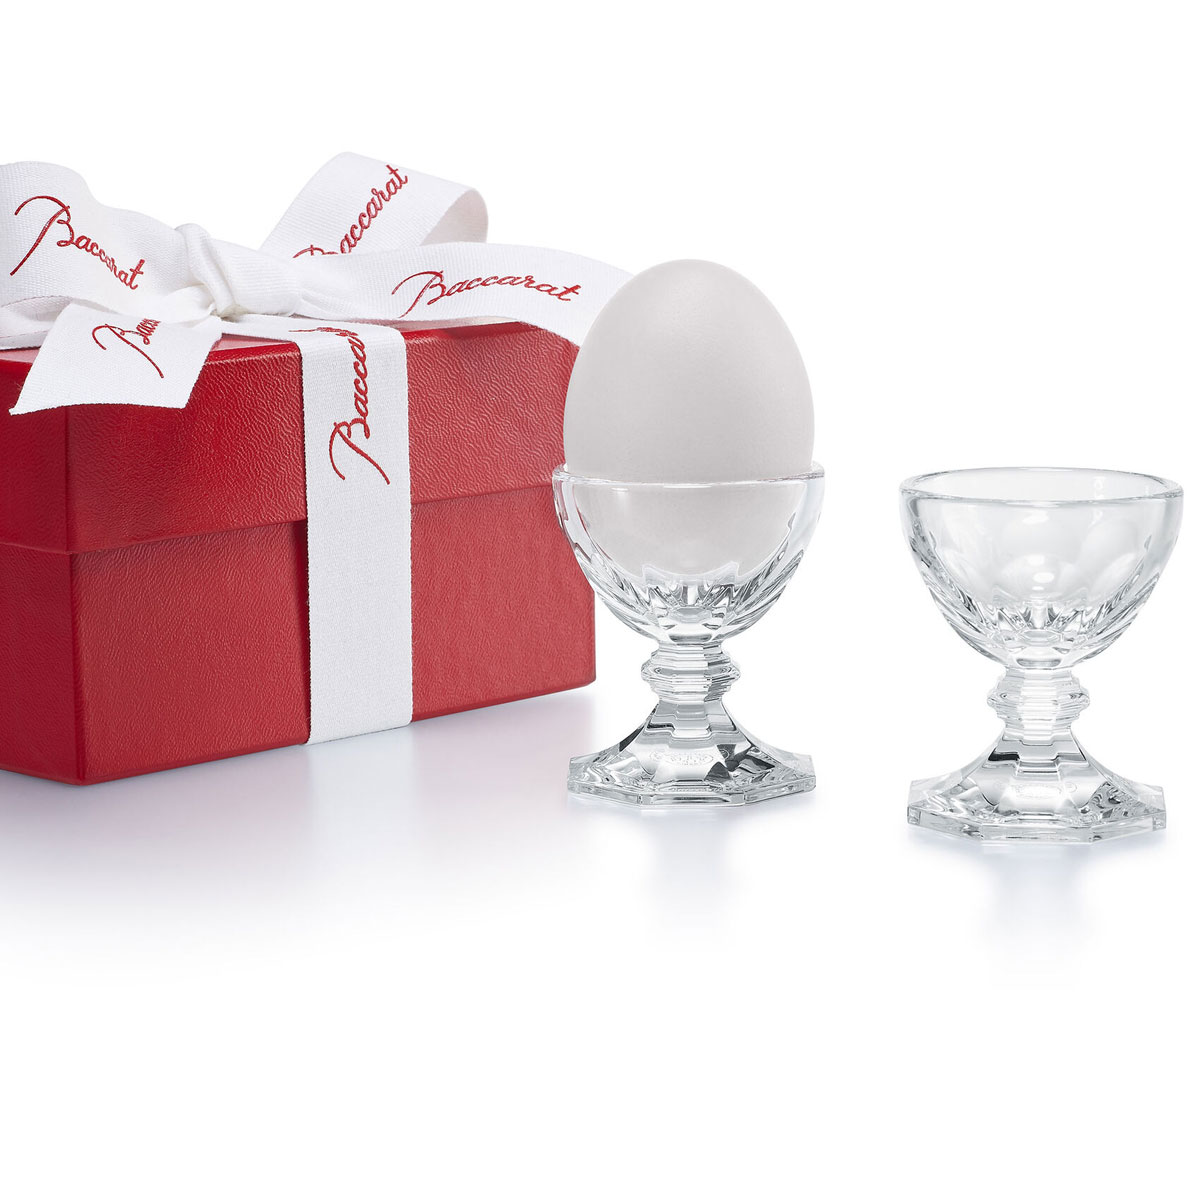 Baccarat Harcourt Egg Holder, Pair